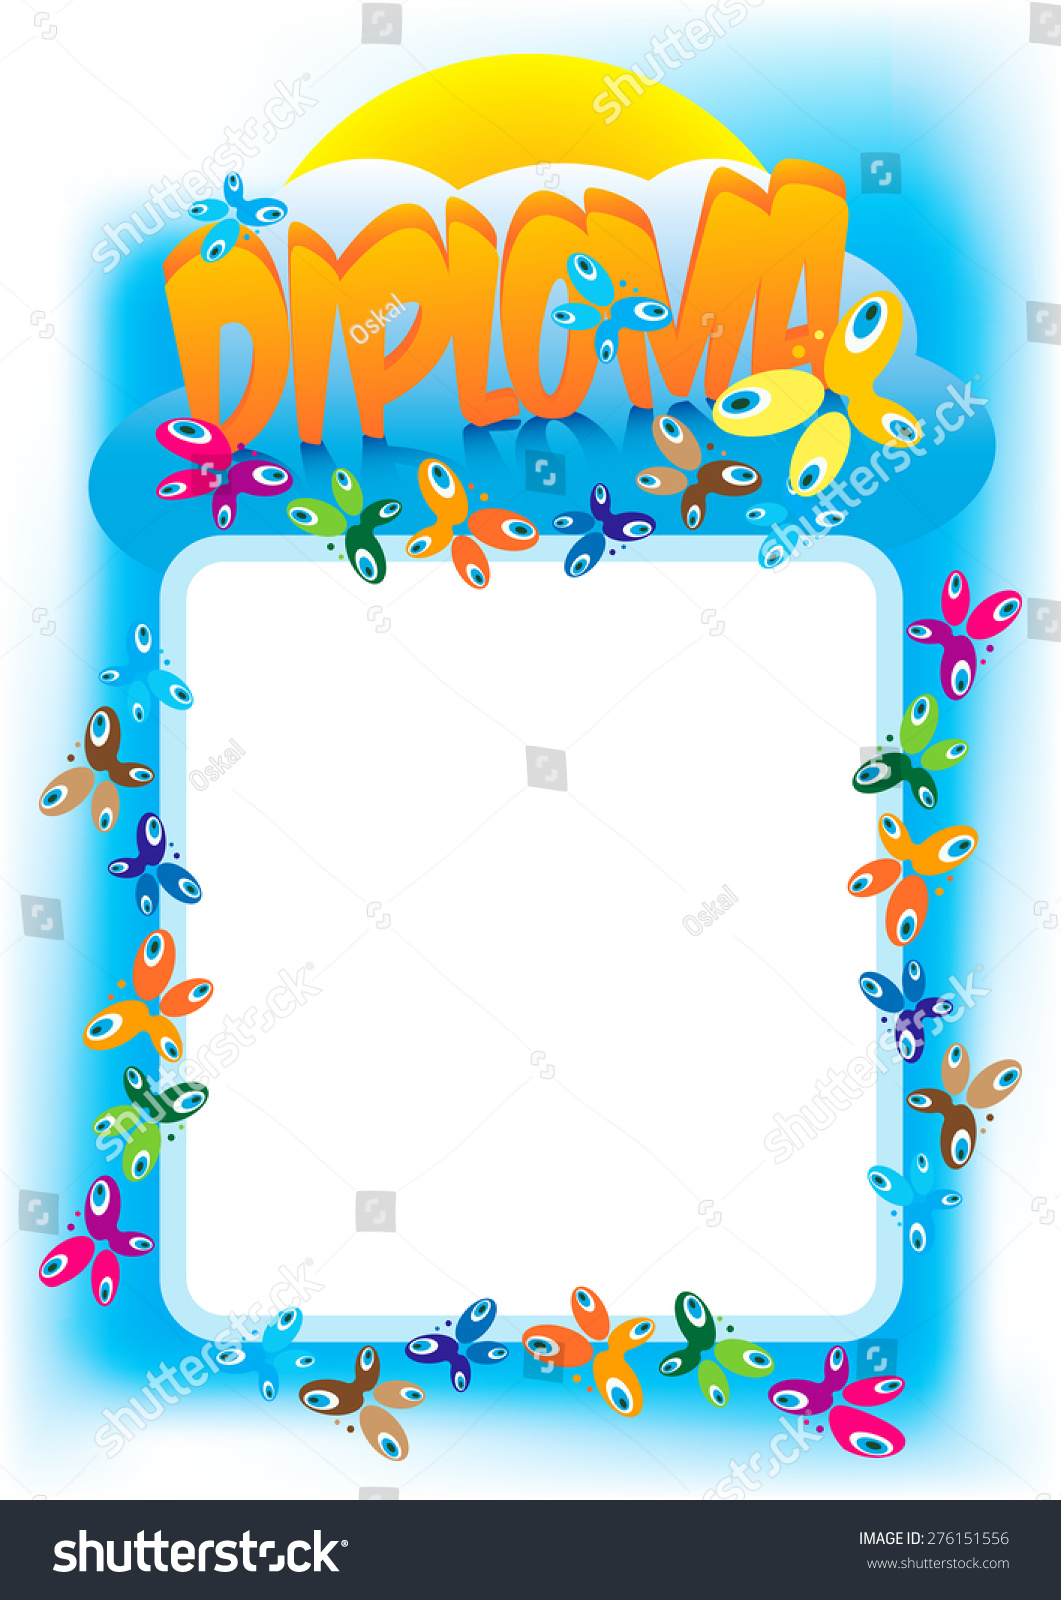 diploma frame kids girls boys women stock vector 276151556